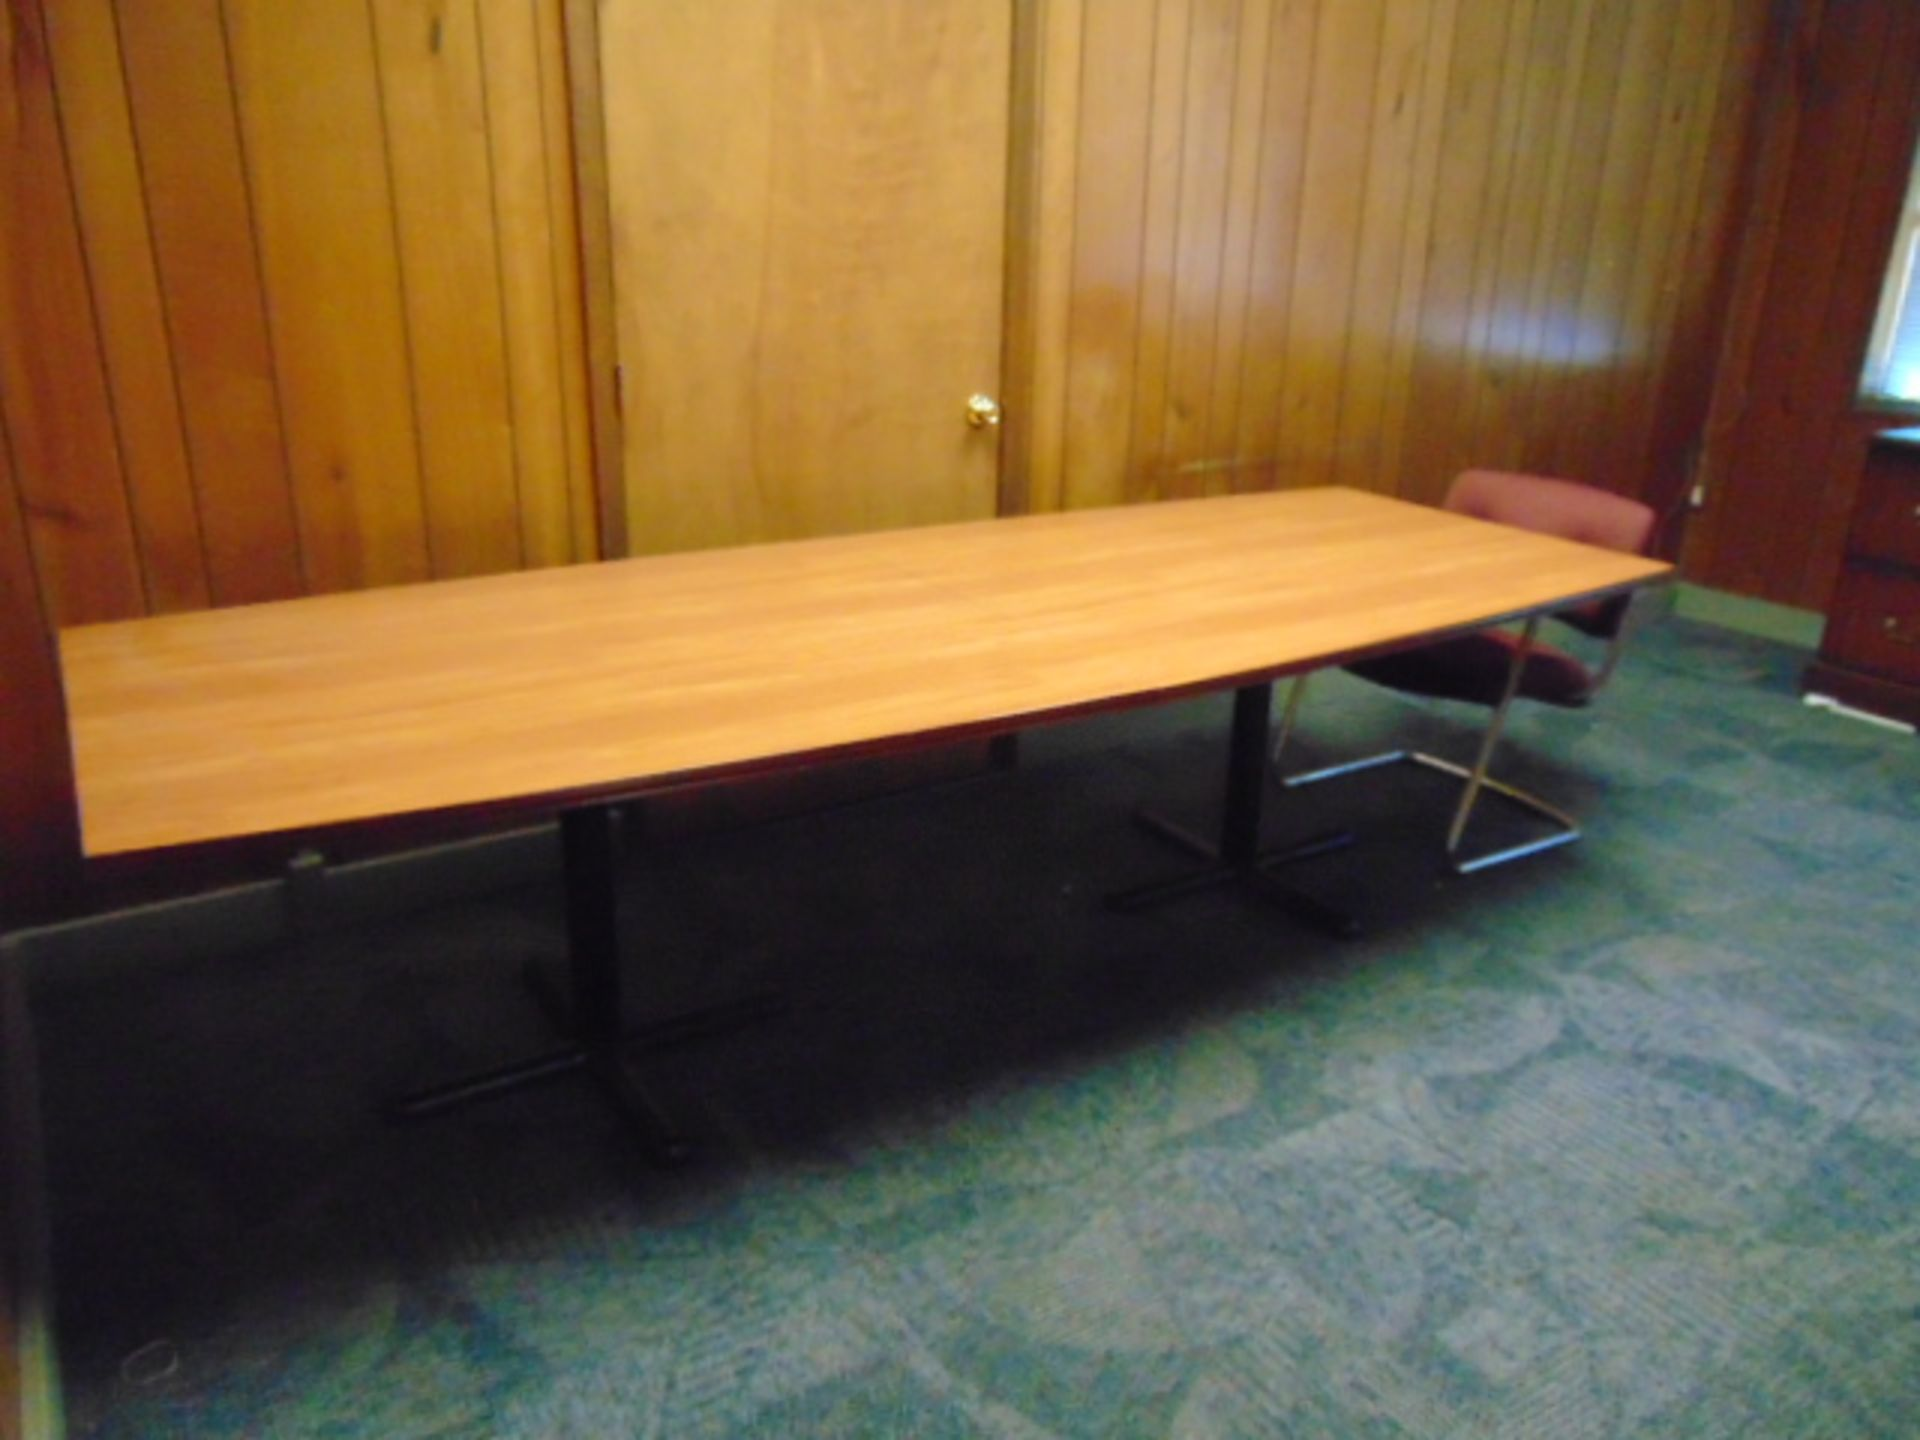 Lot 649 - LOT CONSISTING OF: desk, credenza, table & cabinet